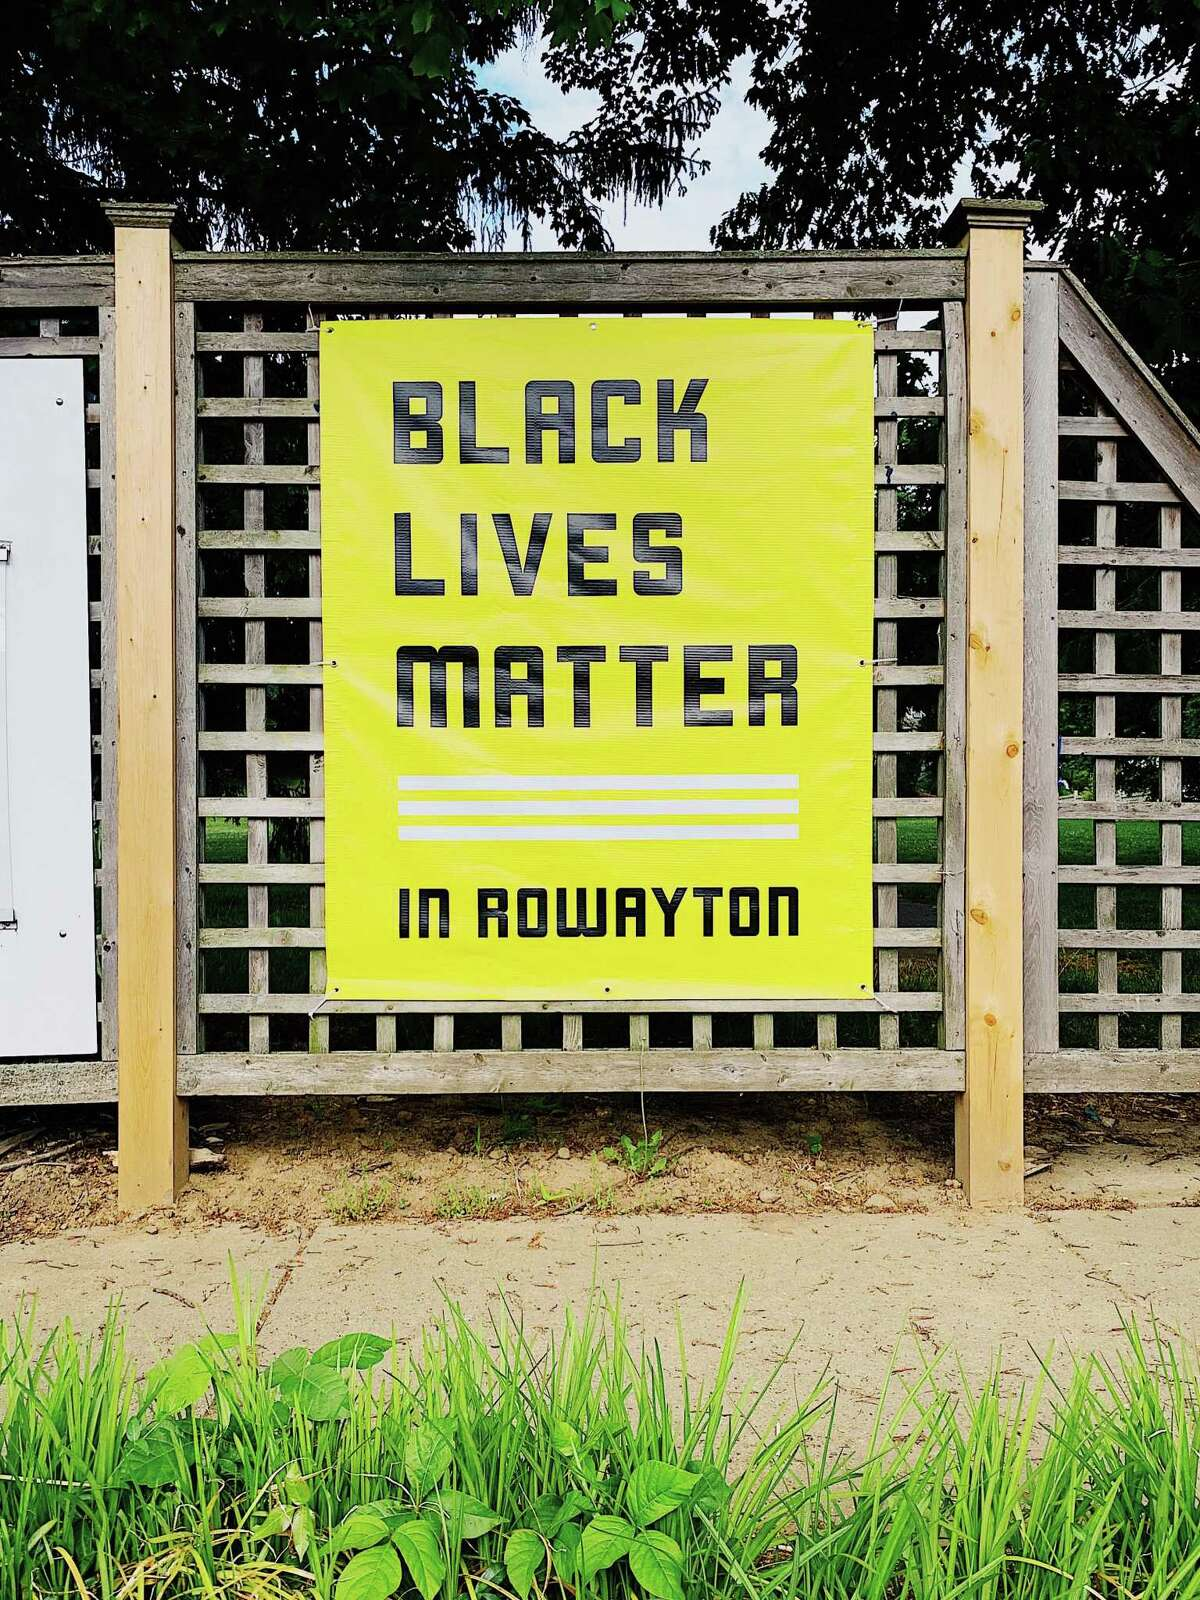 After twice being vandalized, a third banner was placed on the Old School Field fence in Rowayton. But the Sixth Taxing District commissioners said the banner must be removed because it supports a